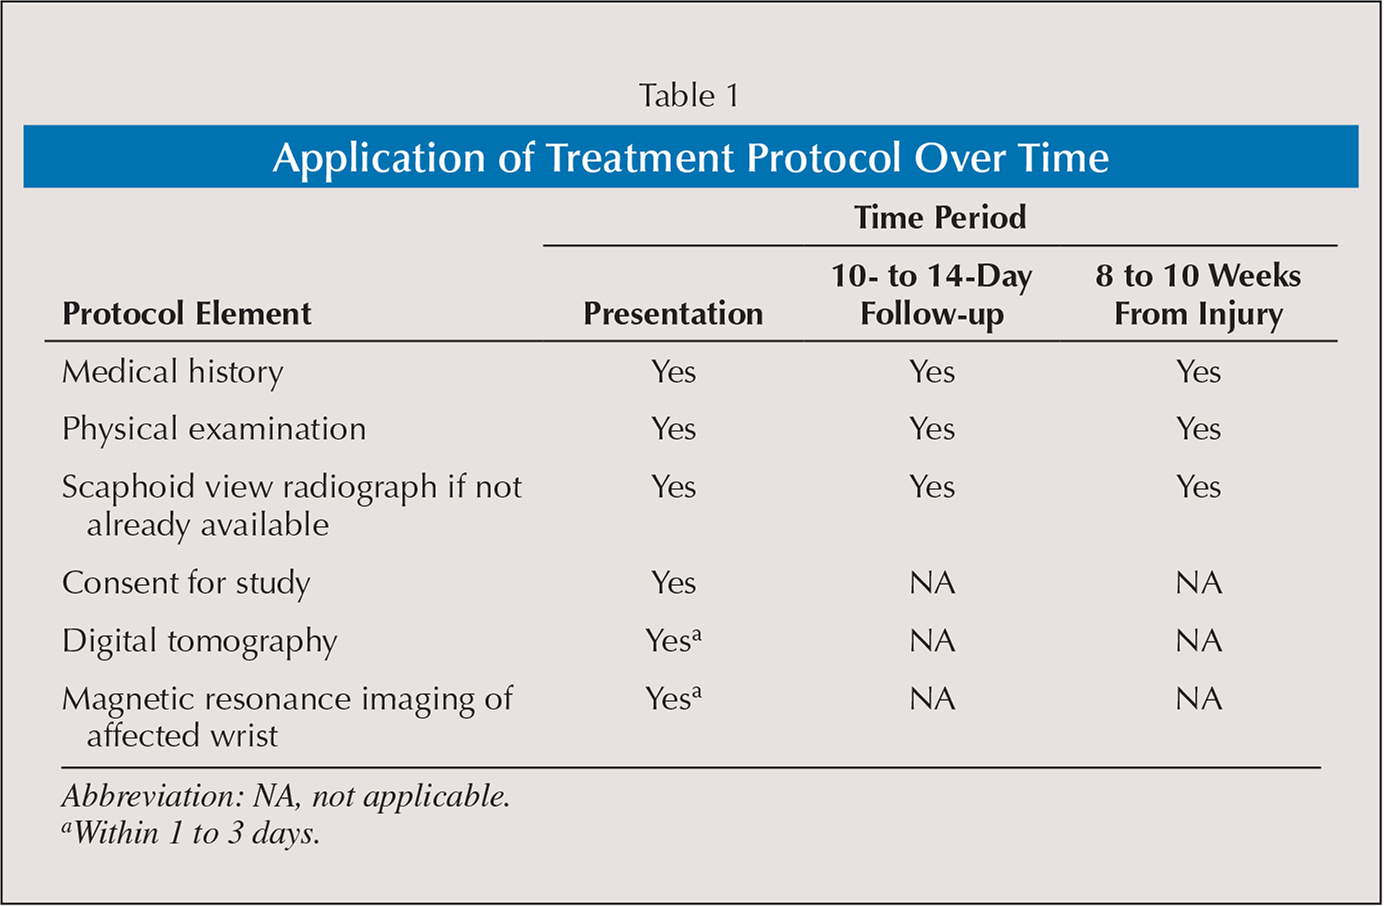 Application of Treatment Protocol Over Time